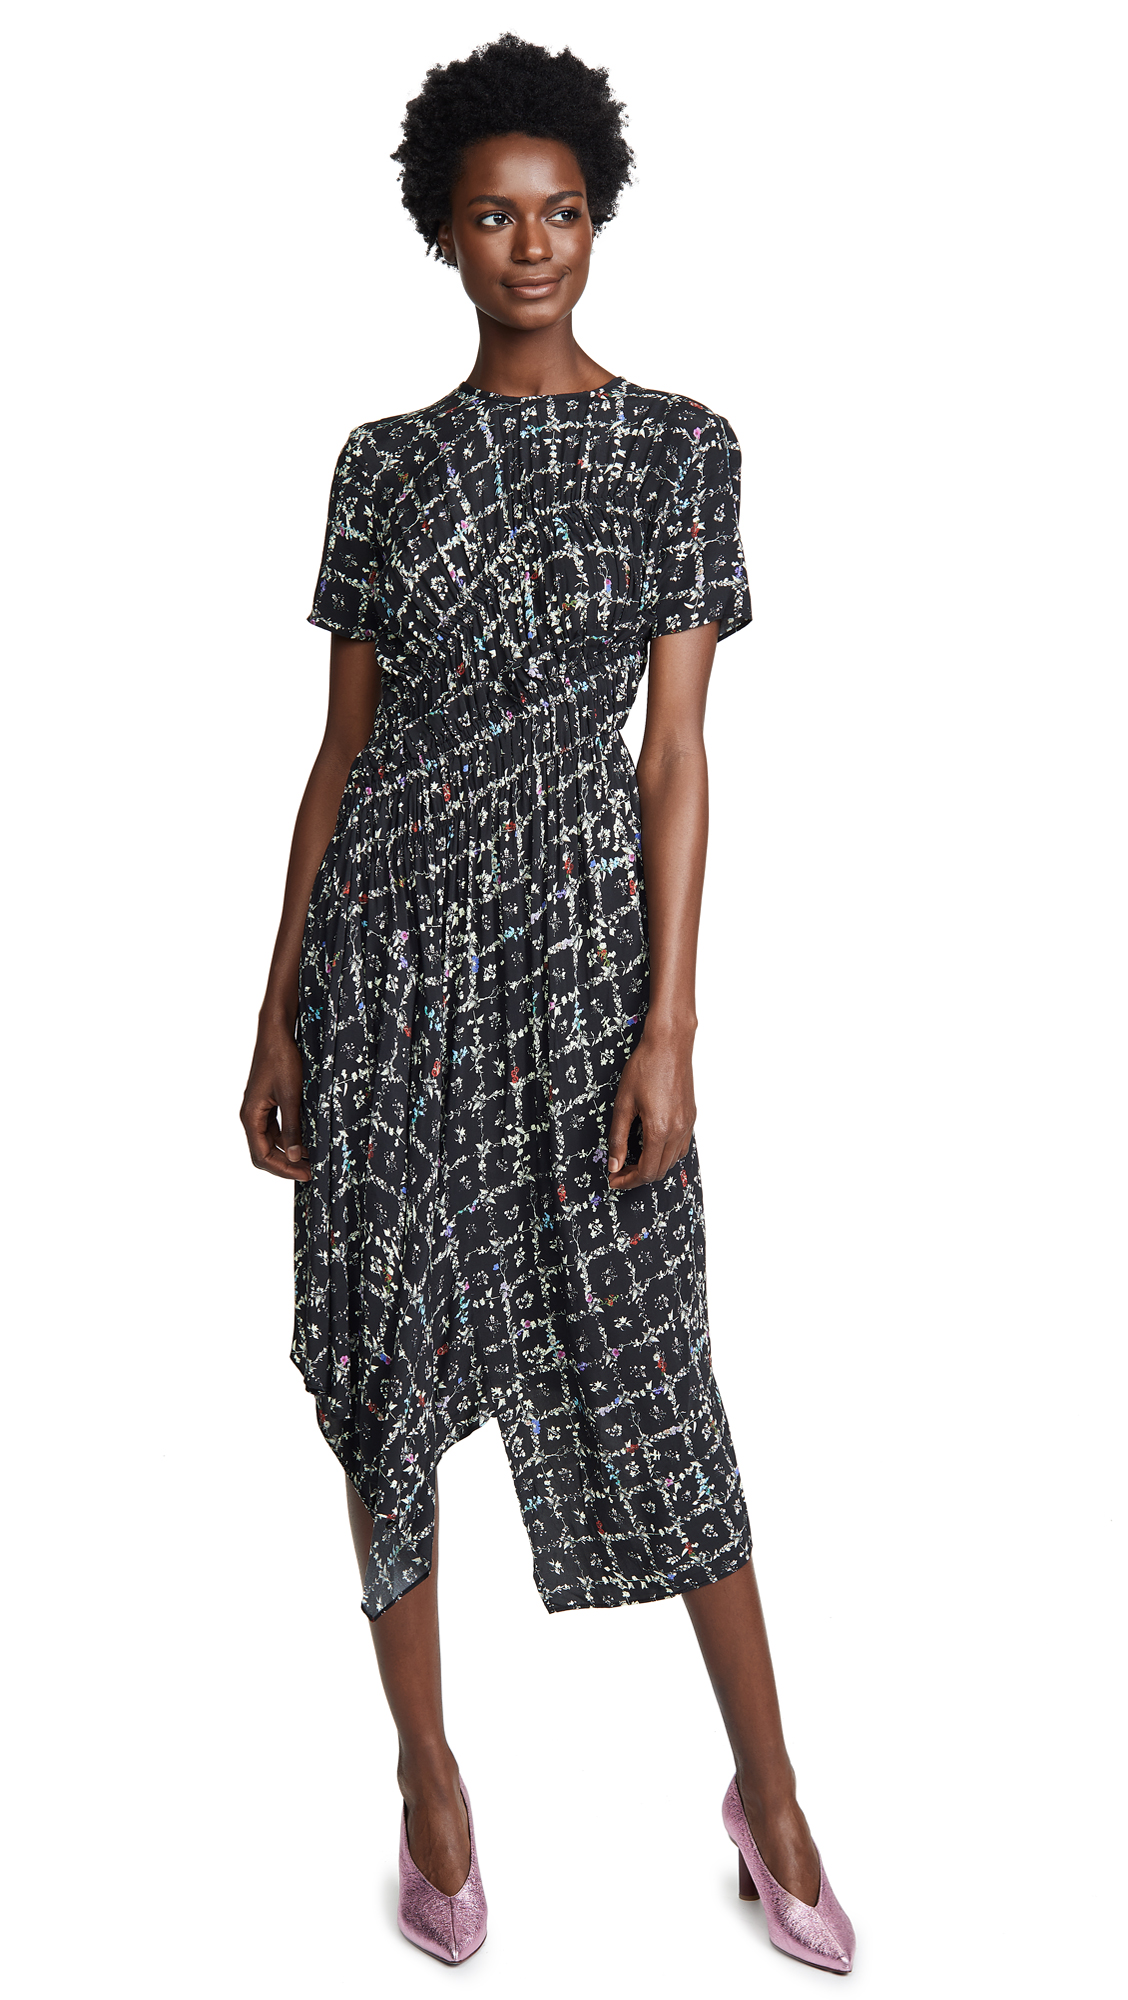 Preen By Thornton Bregazzi Preen Line Keziah Dress